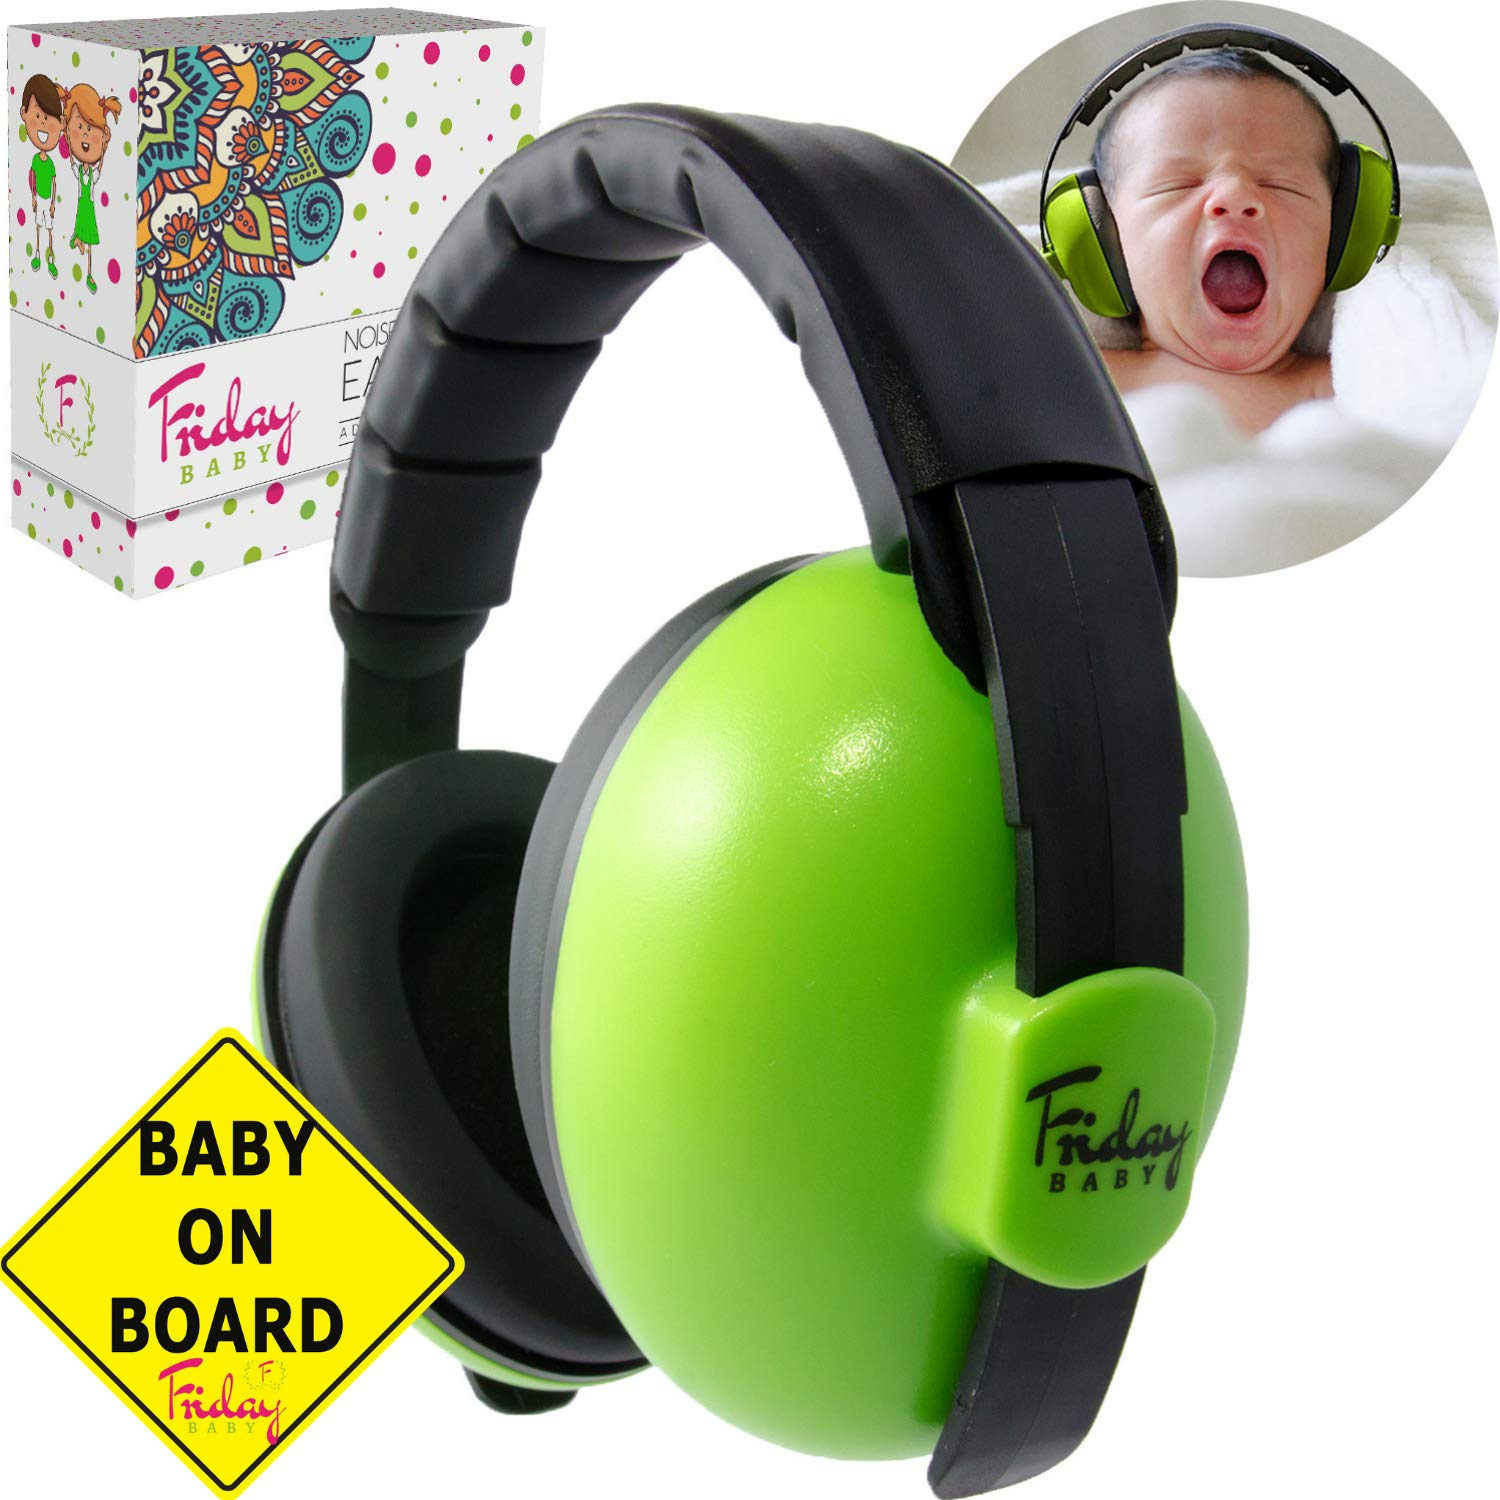 Baby Ear Protection - Comfortable and Adjustable Premium Noise Cancelling Headphones for Babies, Infants, Newborns (0-2+ Years) | Best Baby Headphones Noise Reduction for Concerts, Fireworks & Travels by Friday Baby (Image #9)